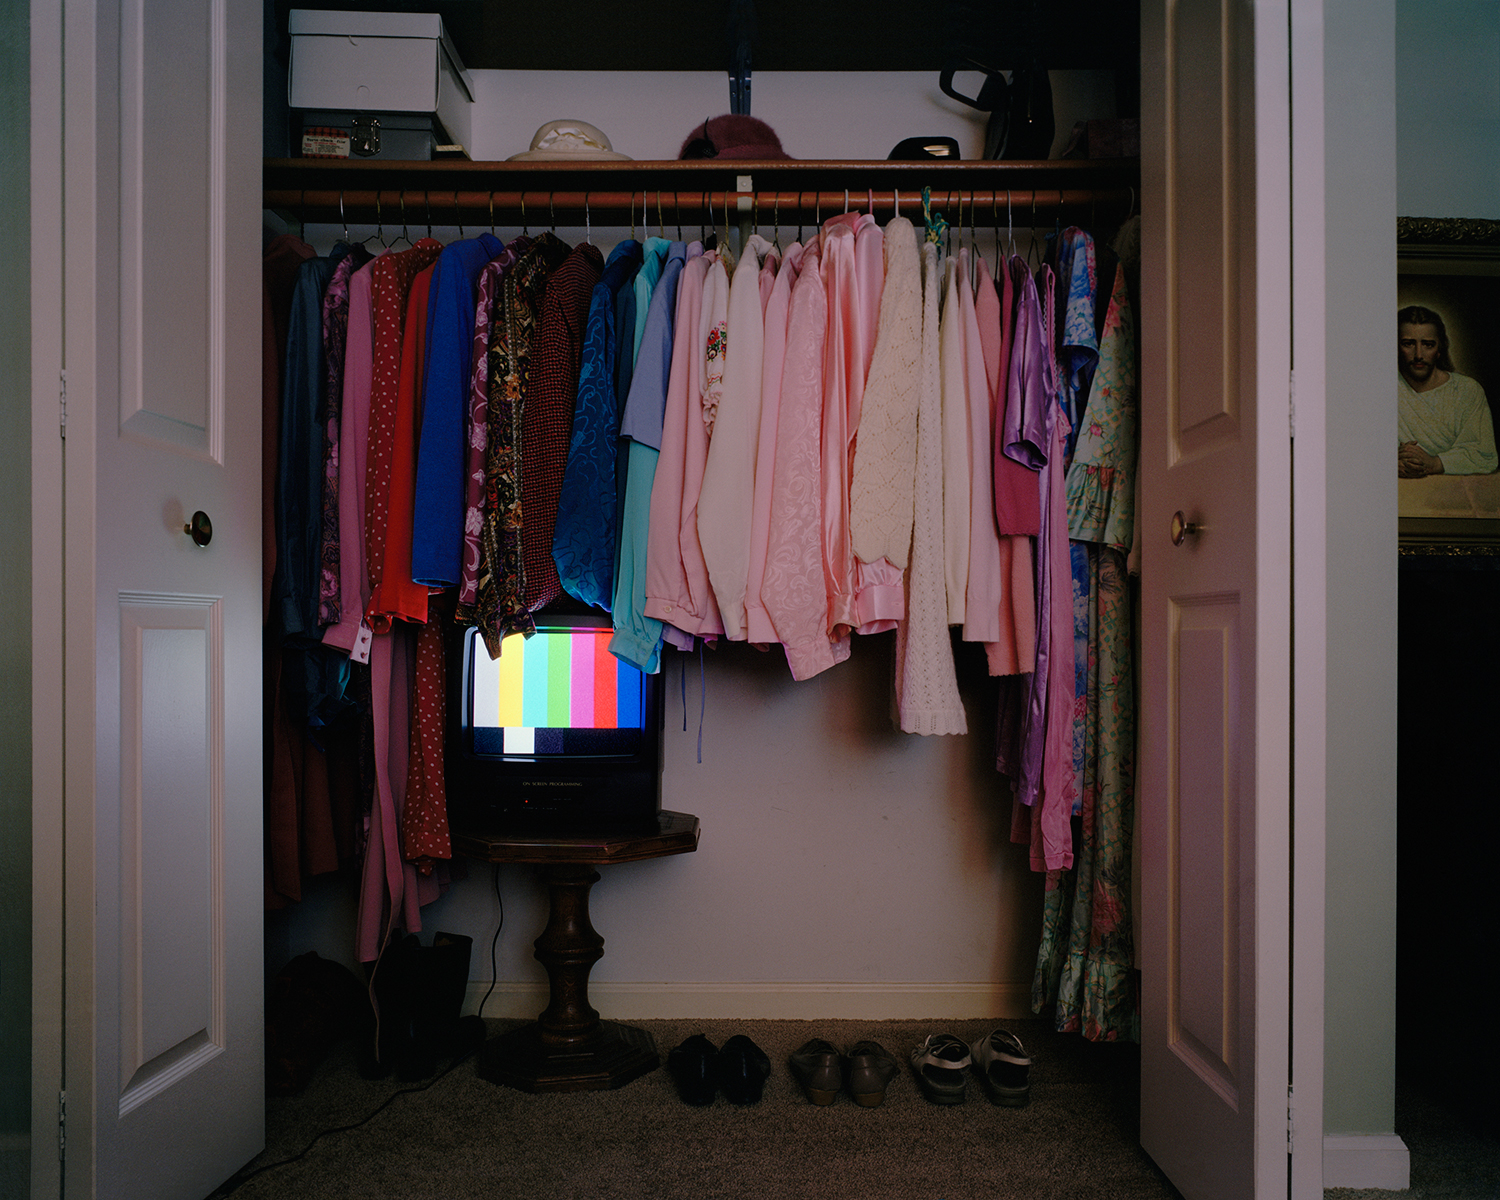 Untitled (Grandmother's Closet)